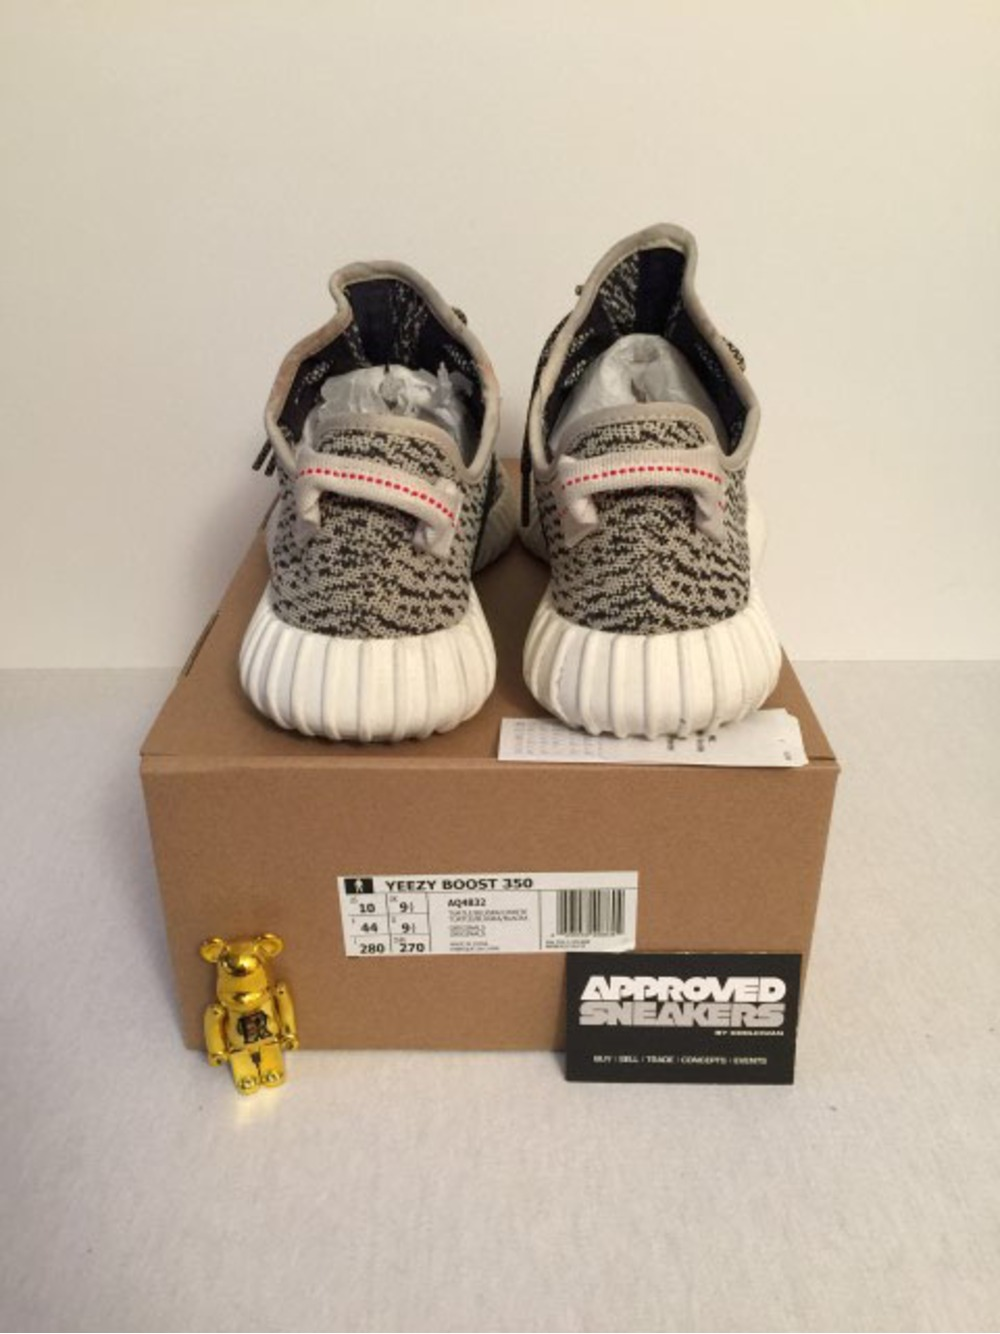 af07cfc52 Artemis Outlet  Cheap Yeezy Boost 350 V2 For Sale